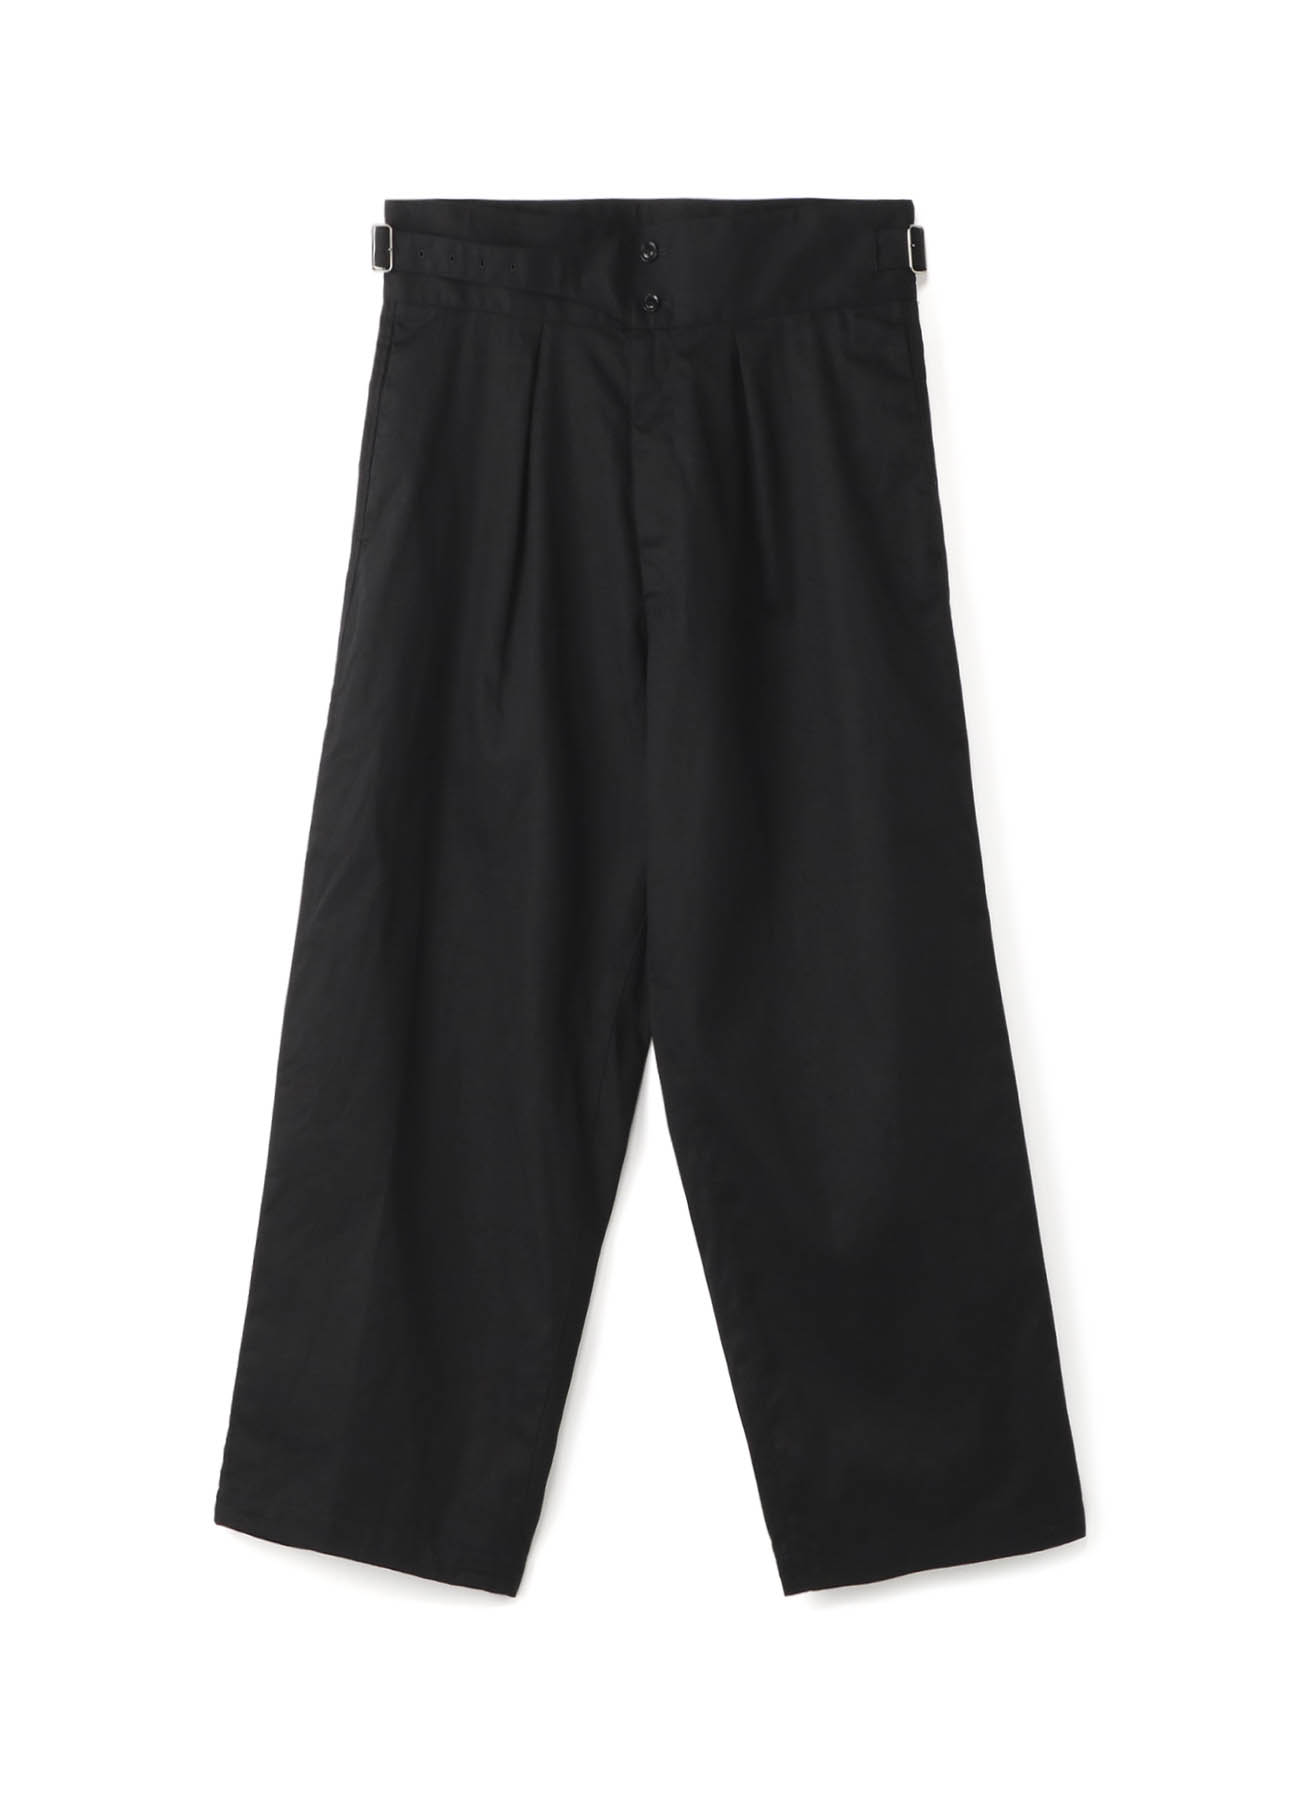 20/Cotton Twill Washer Gurkha Pants